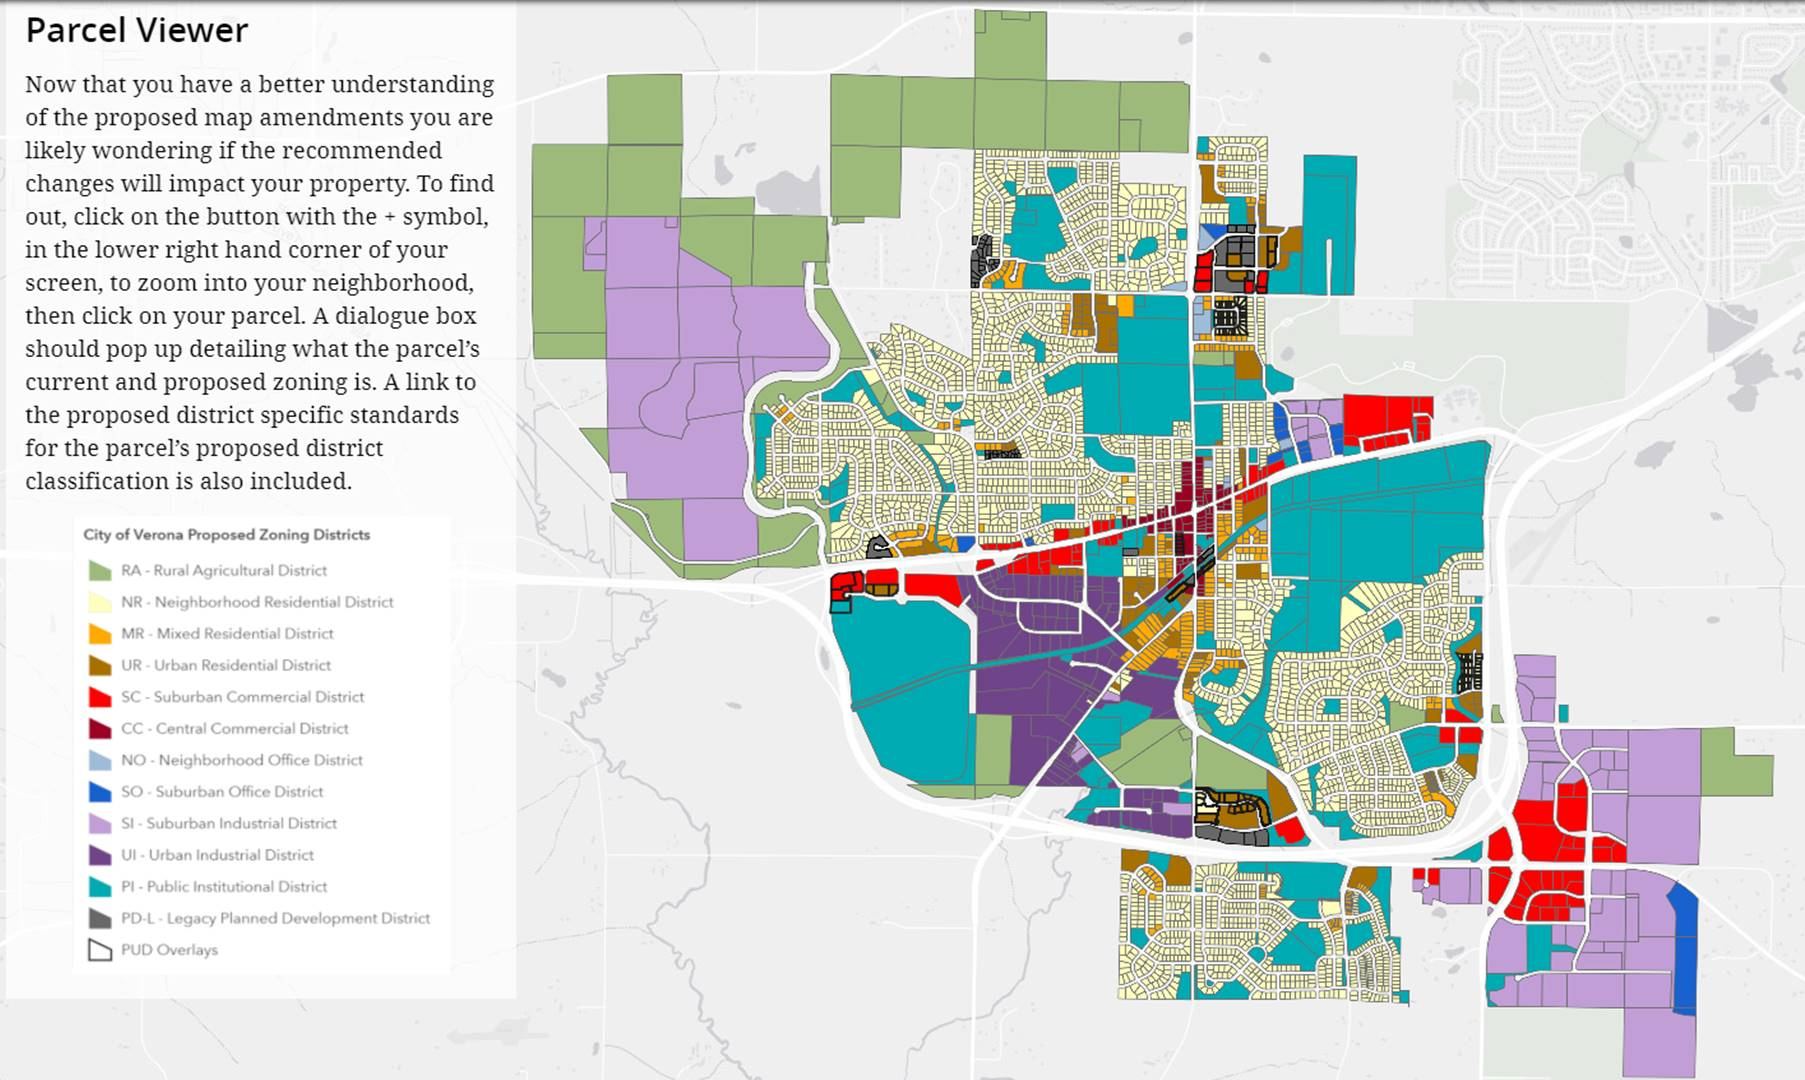 Proposed Zoning Map March 2021 Opens in new window